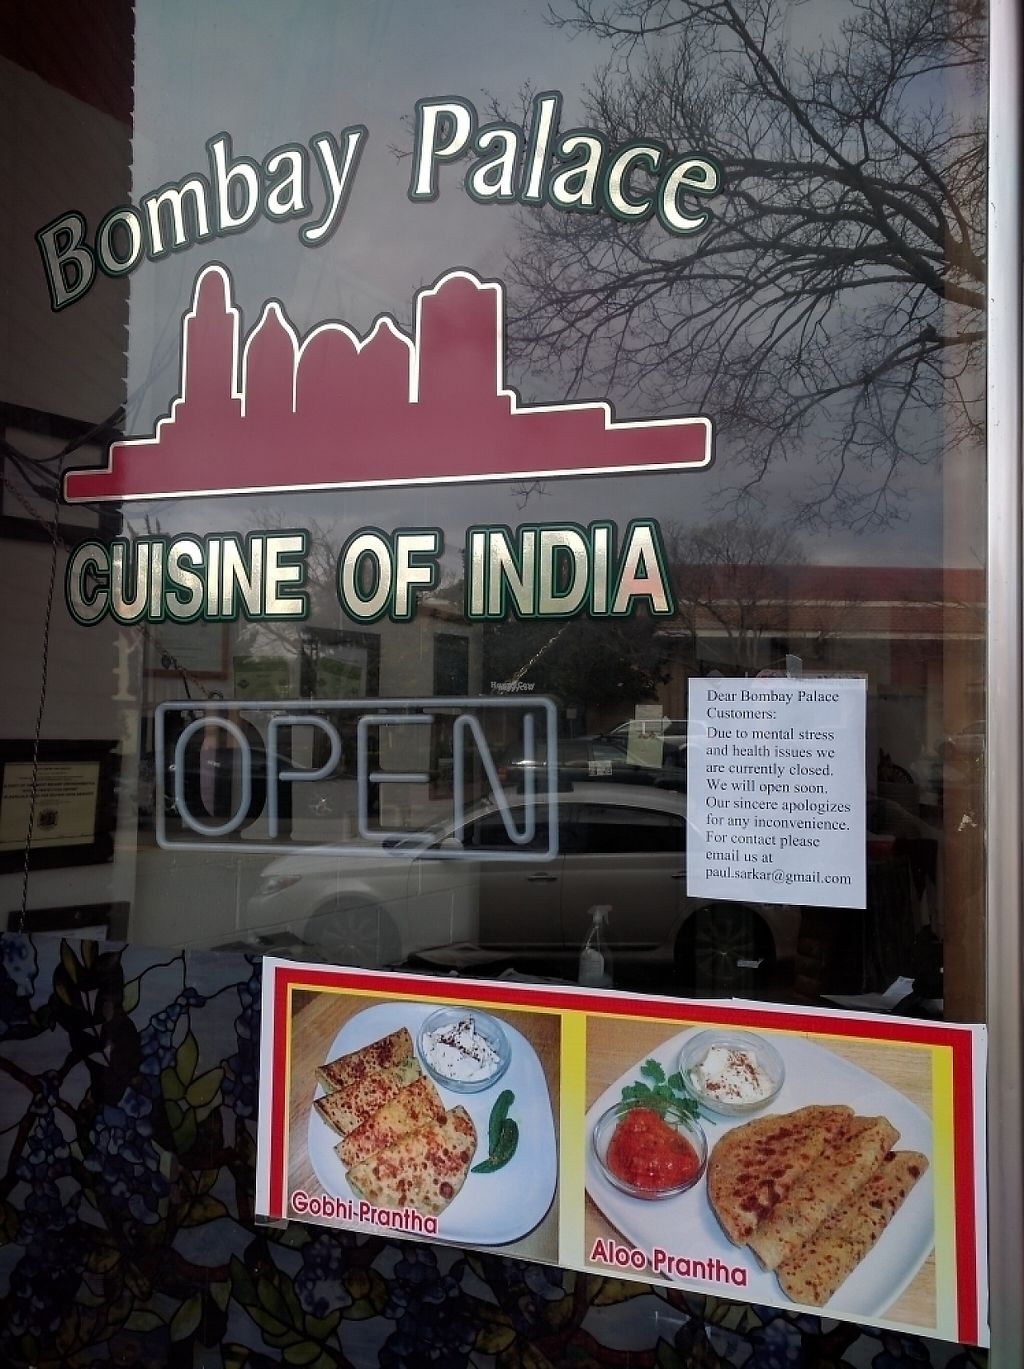 "Photo of CLOSED: Bombay Palace  by <a href=""/members/profile/arcataroger"">arcataroger</a> <br/>Closed as of 12/31/16 due to health issues.  <br/> December 31, 2016  - <a href='/contact/abuse/image/41298/206585'>Report</a>"